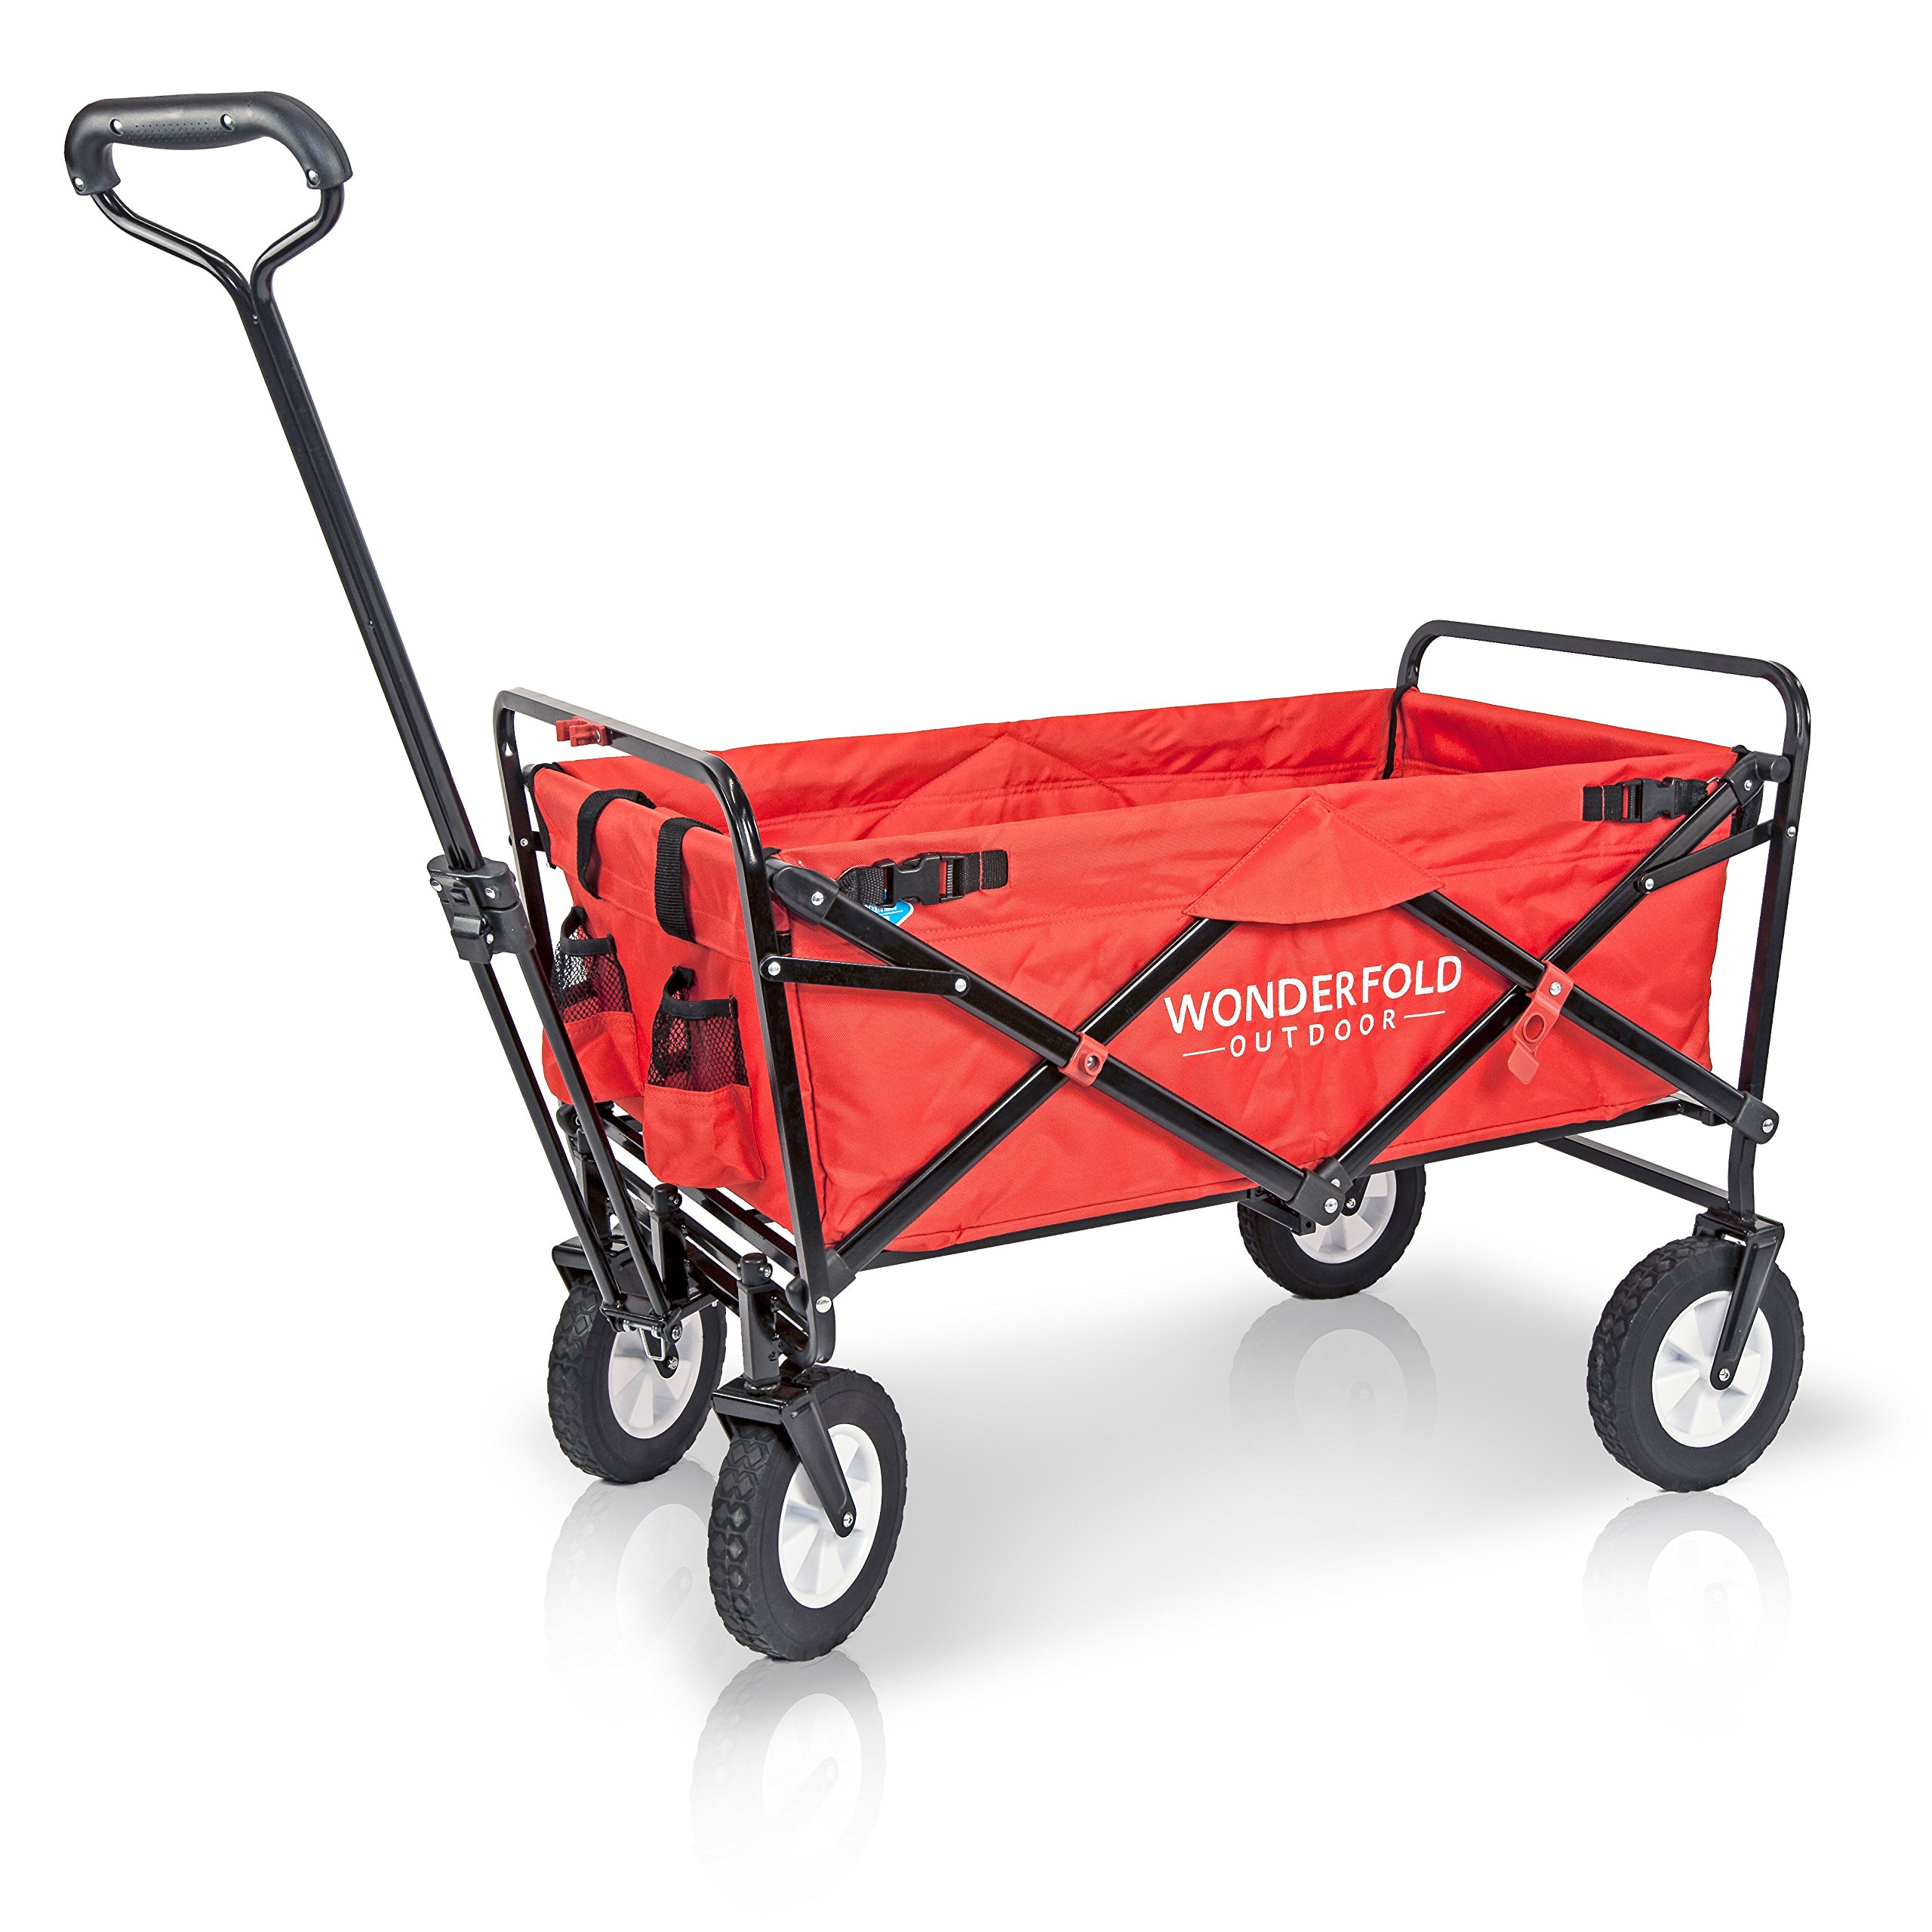 WonderFold Outdoor New Generation Collapsible Wagon Utility Folding Cart by WonderFold Outdoor